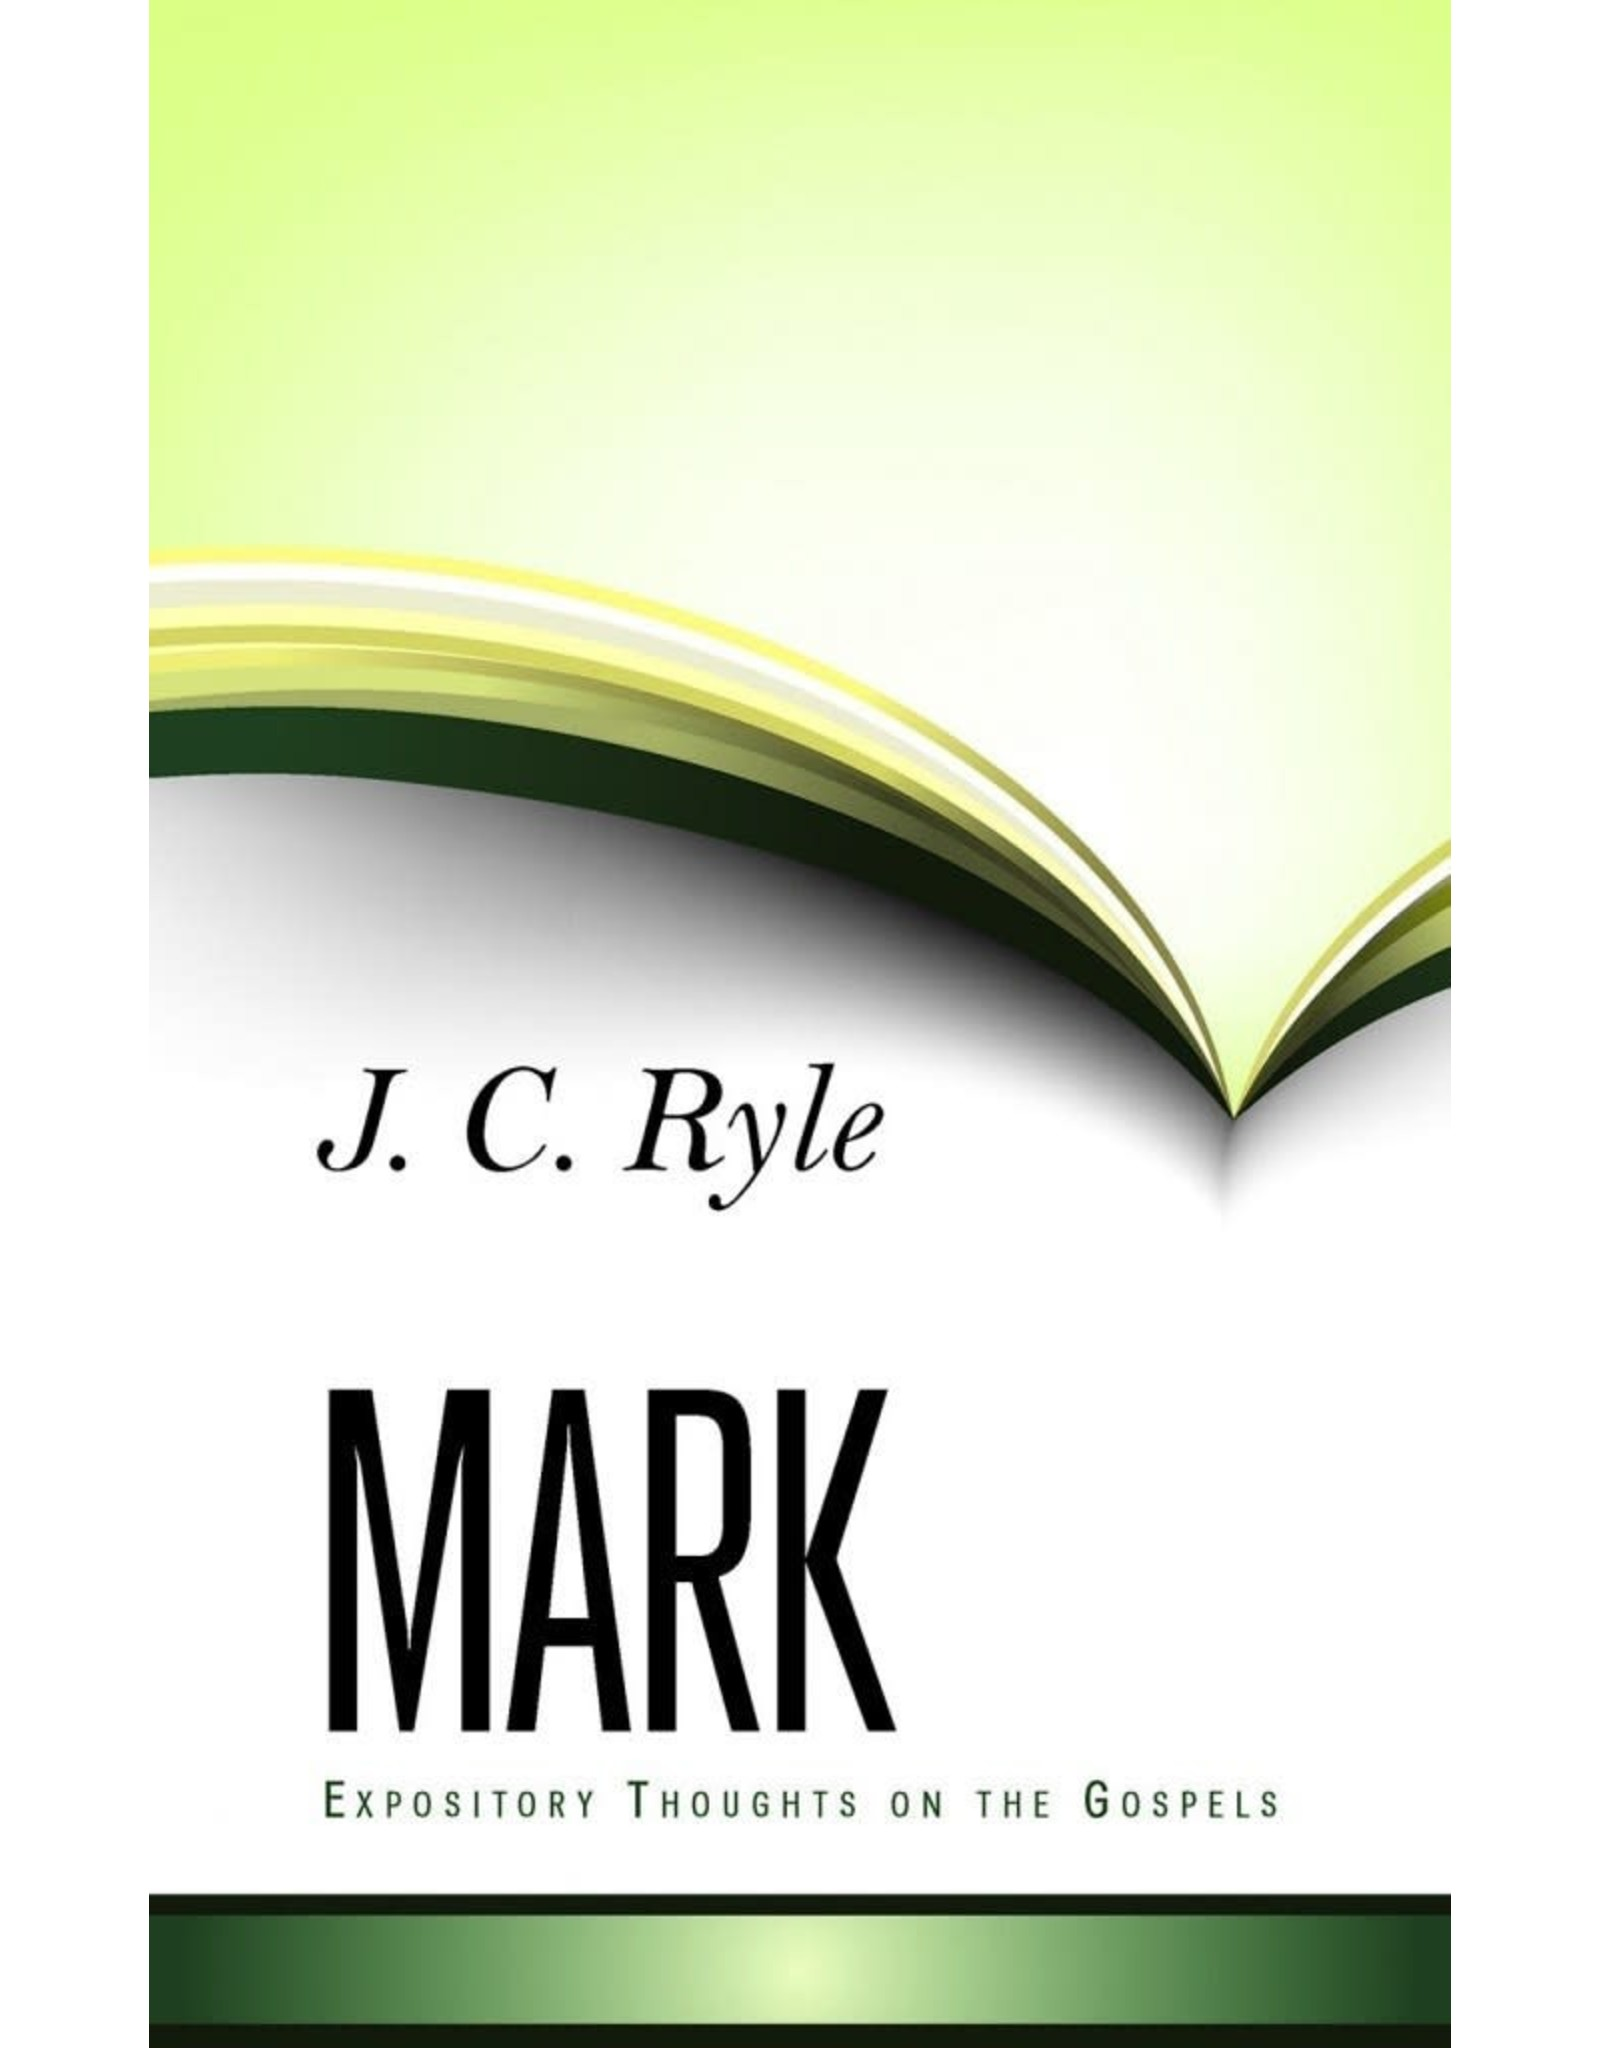 Ryle Mark - Expository Thoughts on the Gospels